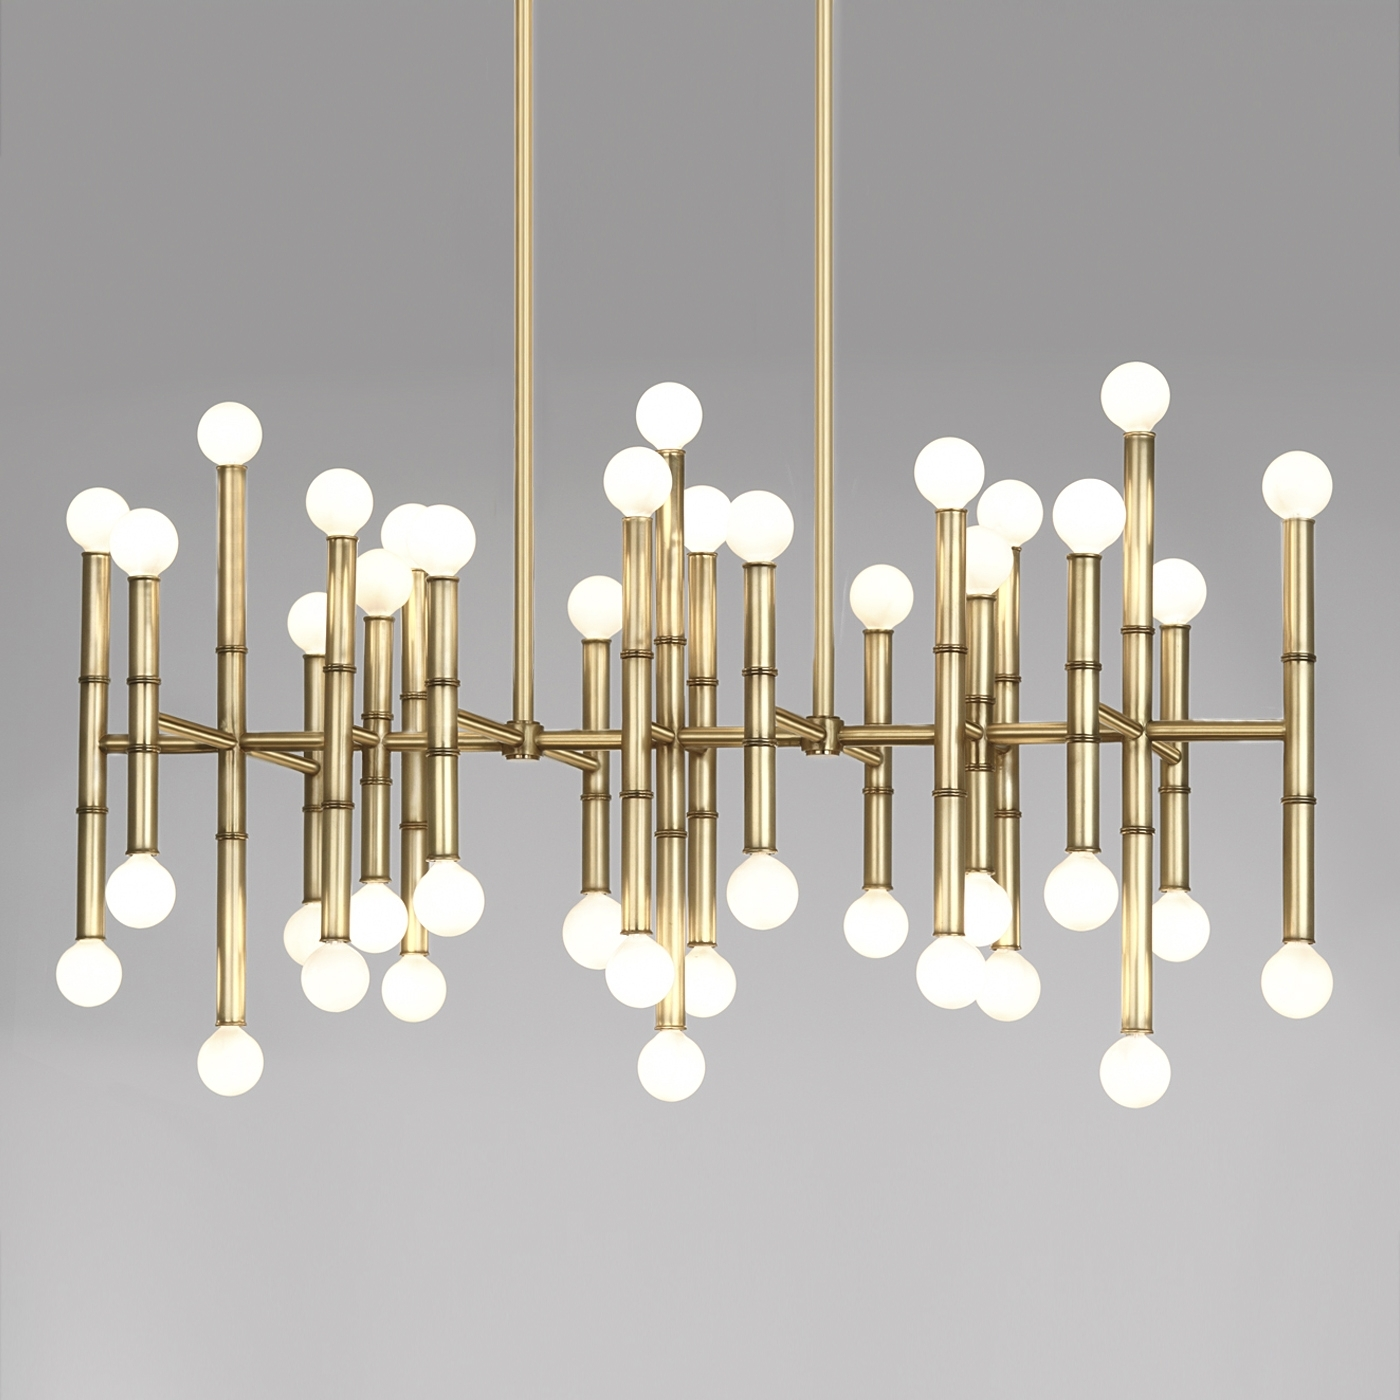 Jonathan Adler For Modern Chandeliers (View 7 of 20)